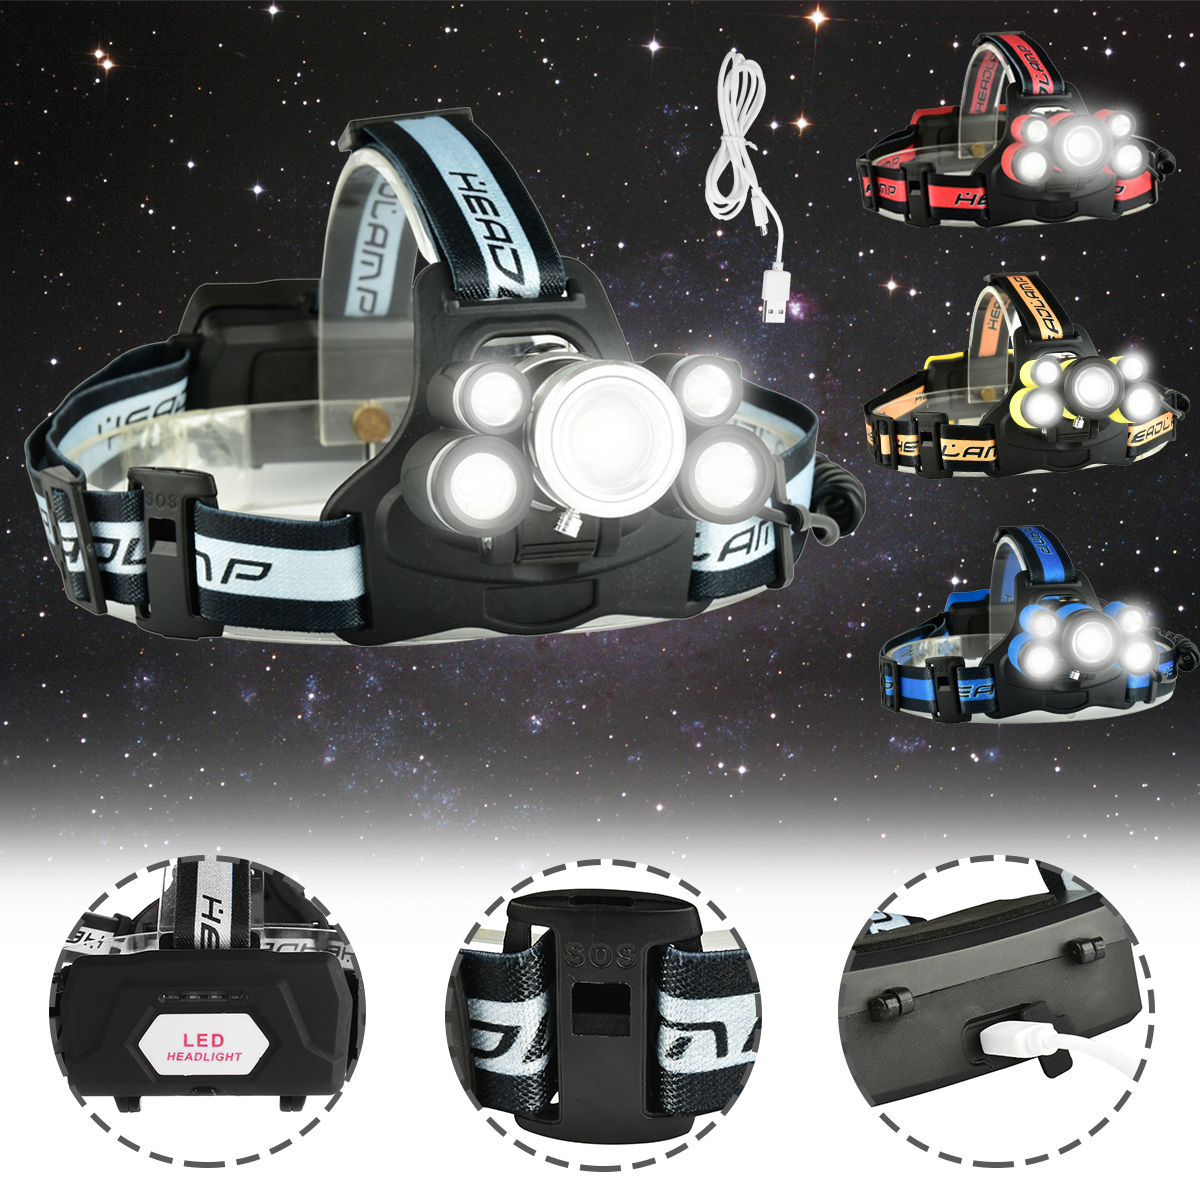 6500 Lumens T6 5 LED USB Rechargeable Headlight Headlamp Head Torch 5 Modes with SOS Help Whistle For Camping Fishing Hining